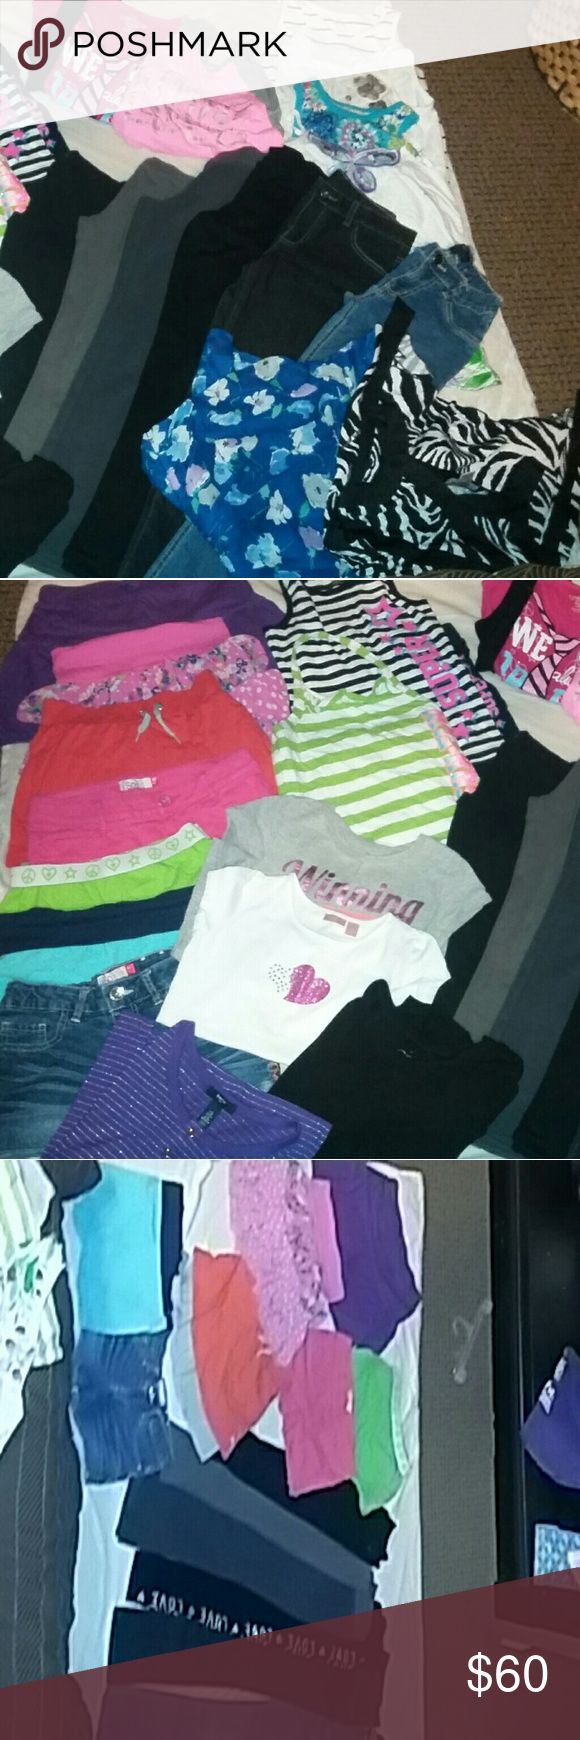 huge girl 10/12 lot lot includes... 2 pairs of jeans  2 skirts  3 pair of leggings  1 pair of fleece pants  1 scort  5 pairs of shorts  3 short sleeve shirts  3 long sleeve shirts  6 tang tops   includes Justice, Children's Place, SO, Gab Kids, and others Other